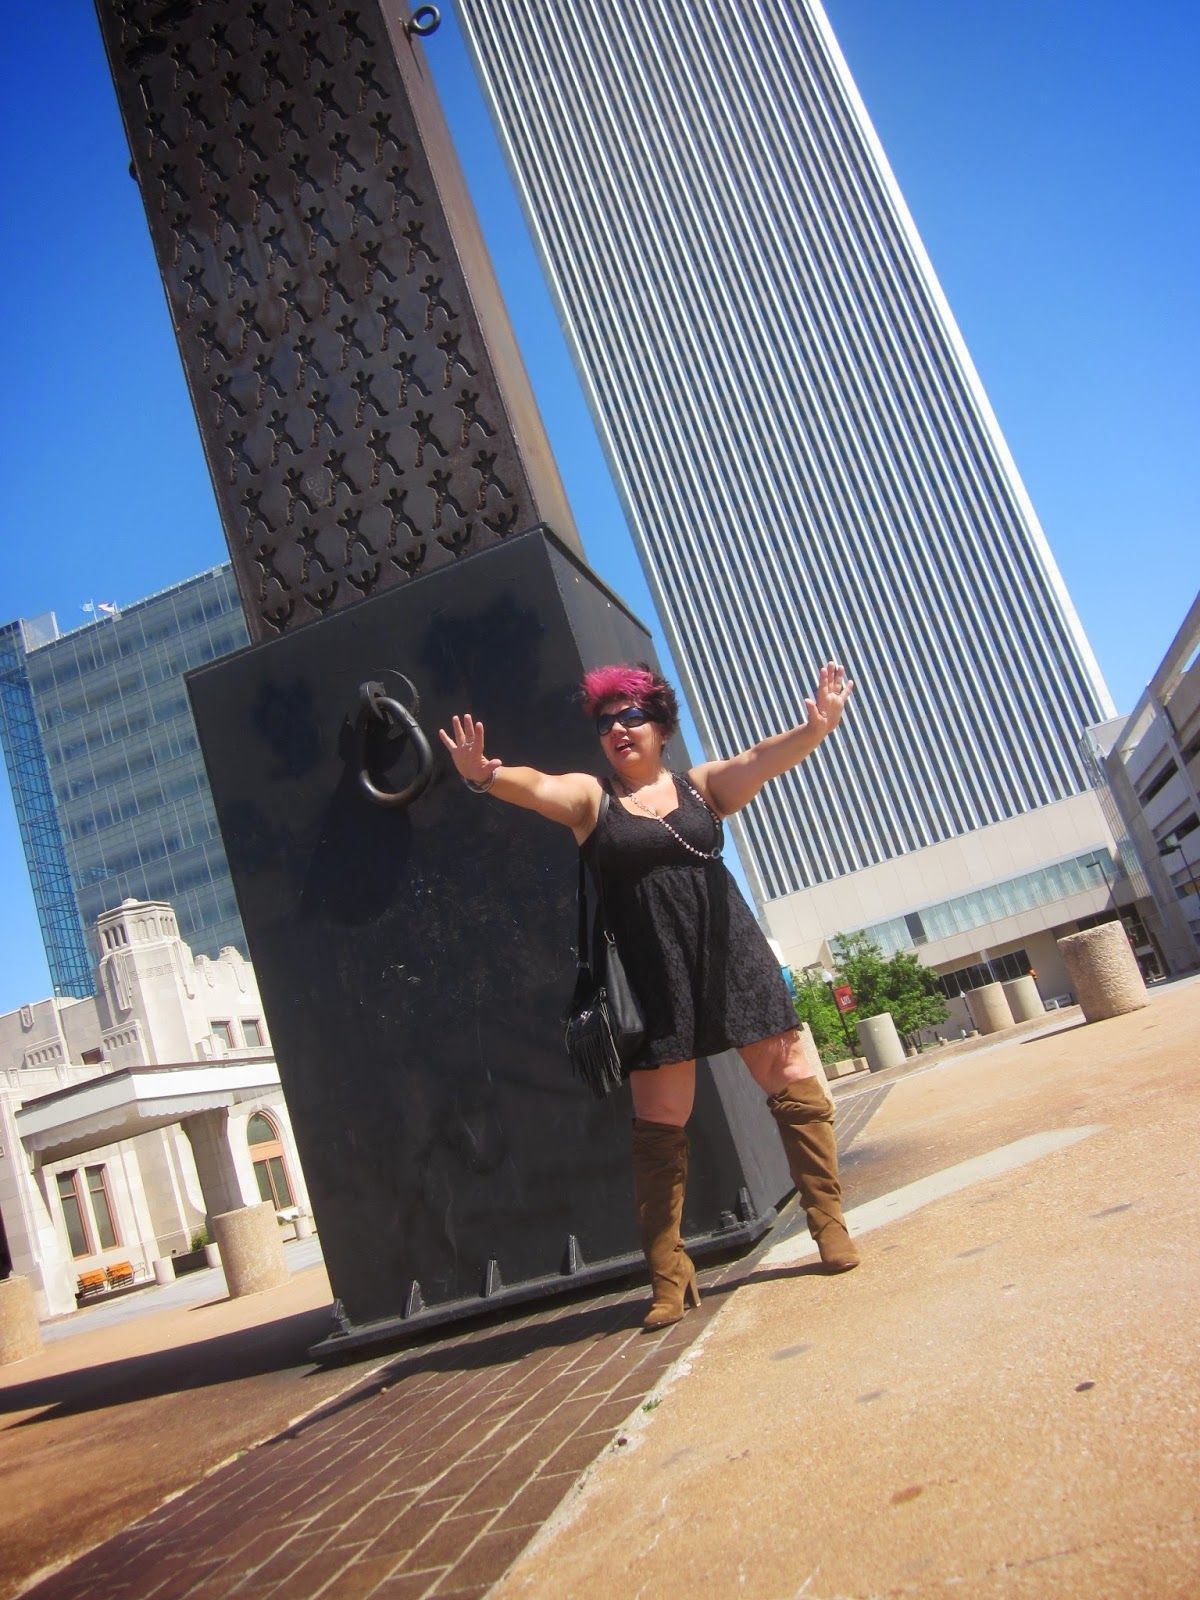 STOP! Have you been to The Center of the Universe in Tulsa 85bce4cac